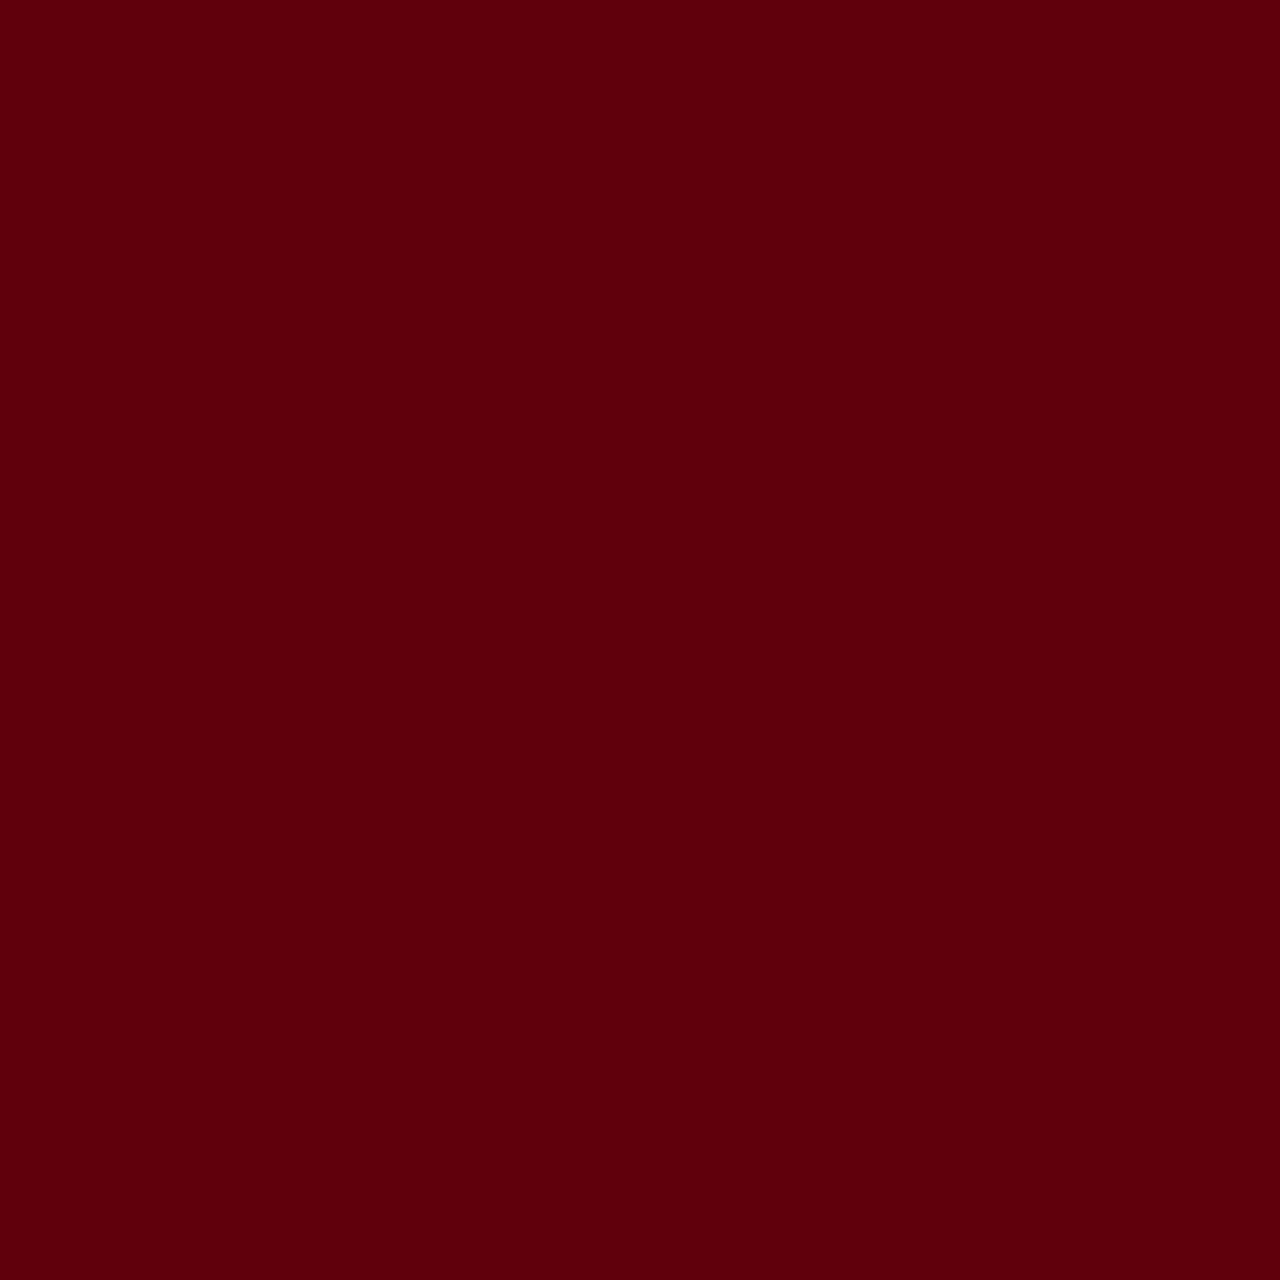 #0027 Rosco Gels Roscolux Medium Red, 20x24""